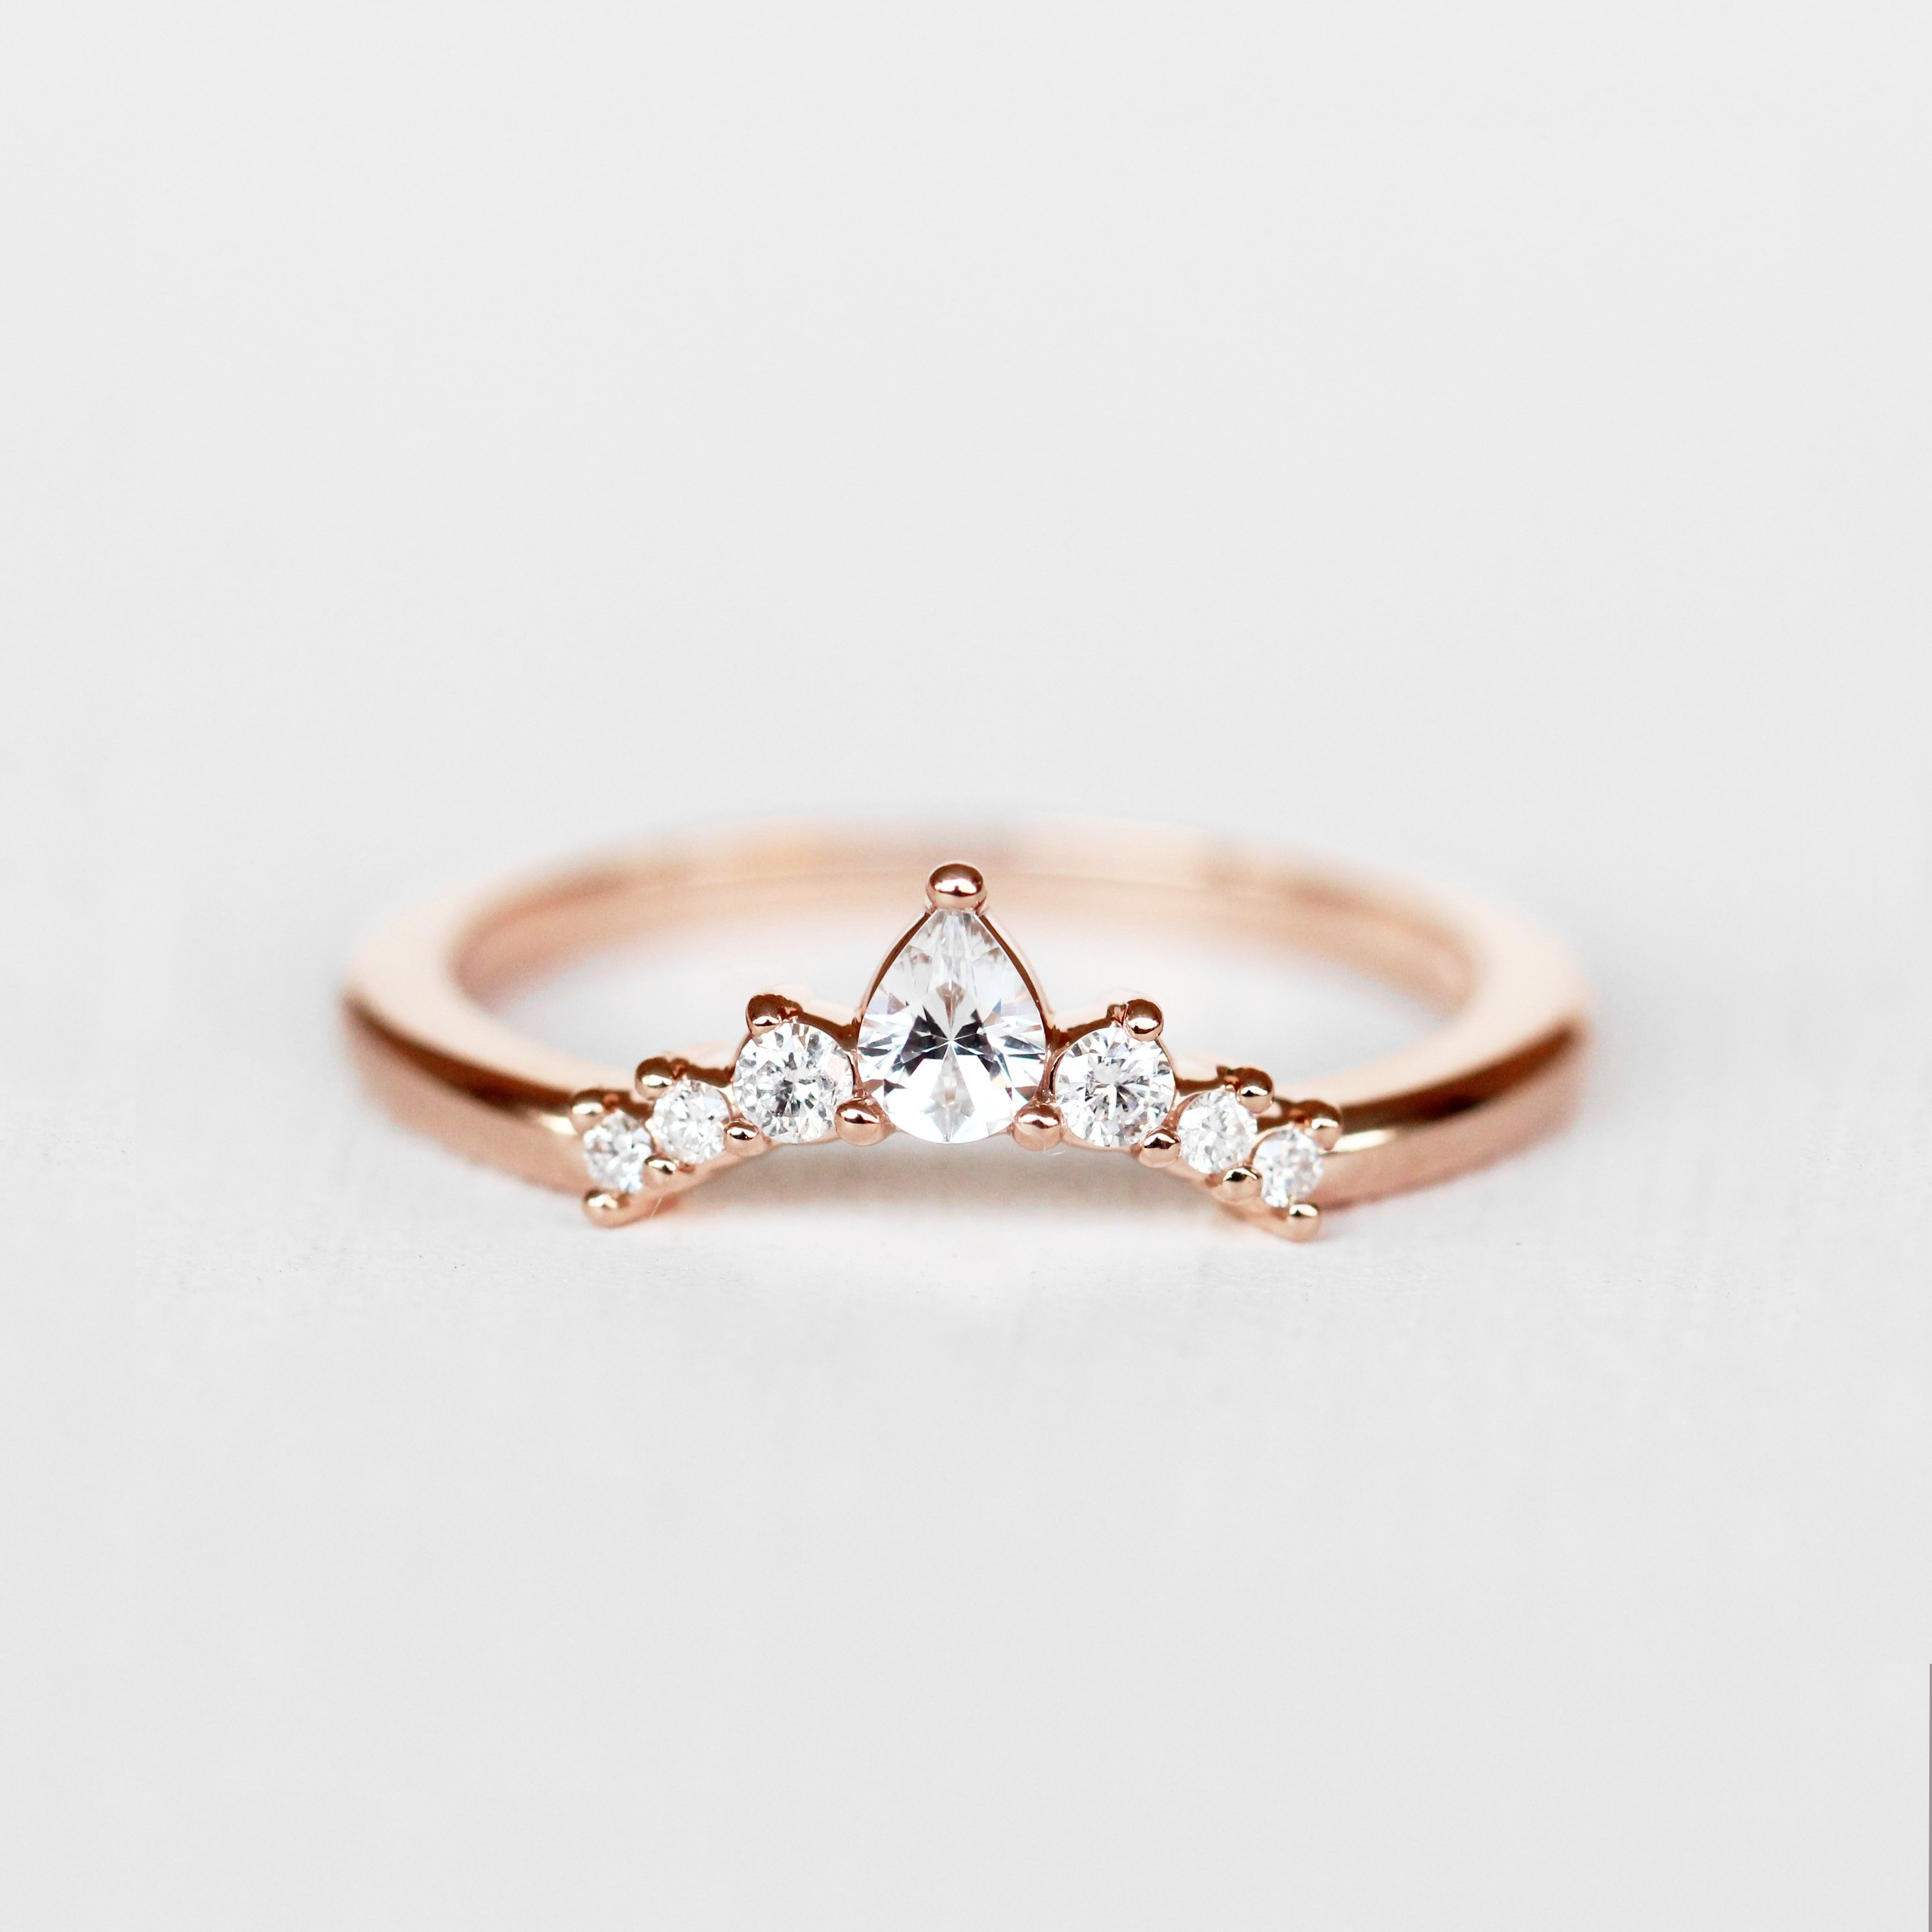 Moira Contoured Diamond Wedding Stacking Band Made To Order Topaz Engagement Ring Silver Crystal Earrings Gold Wedding Rings